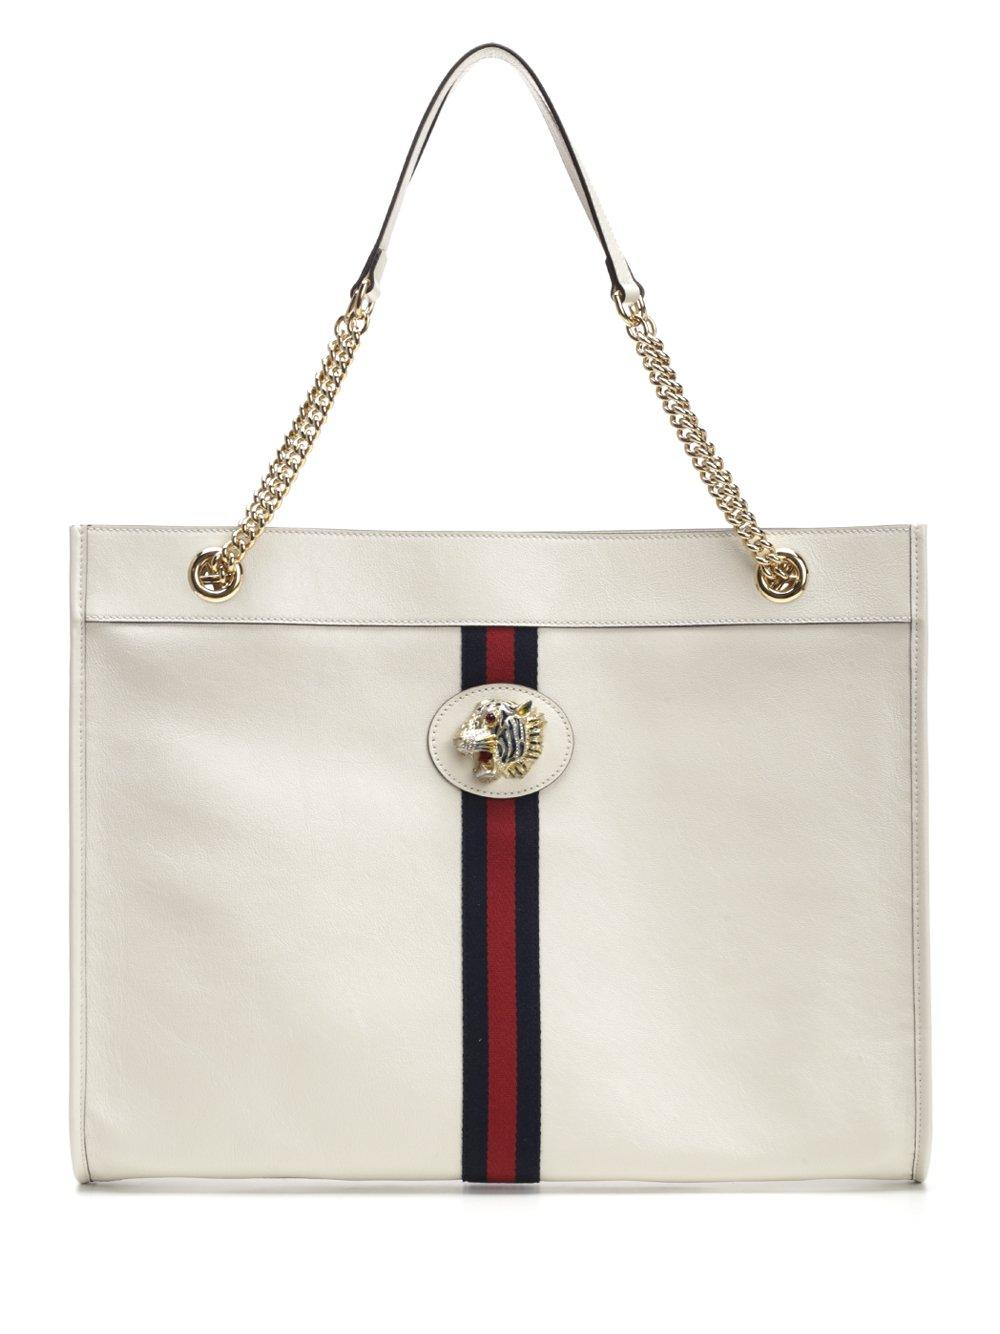 0da78ef54d45 Lyst - Gucci Rajah Large Tote Bag in White